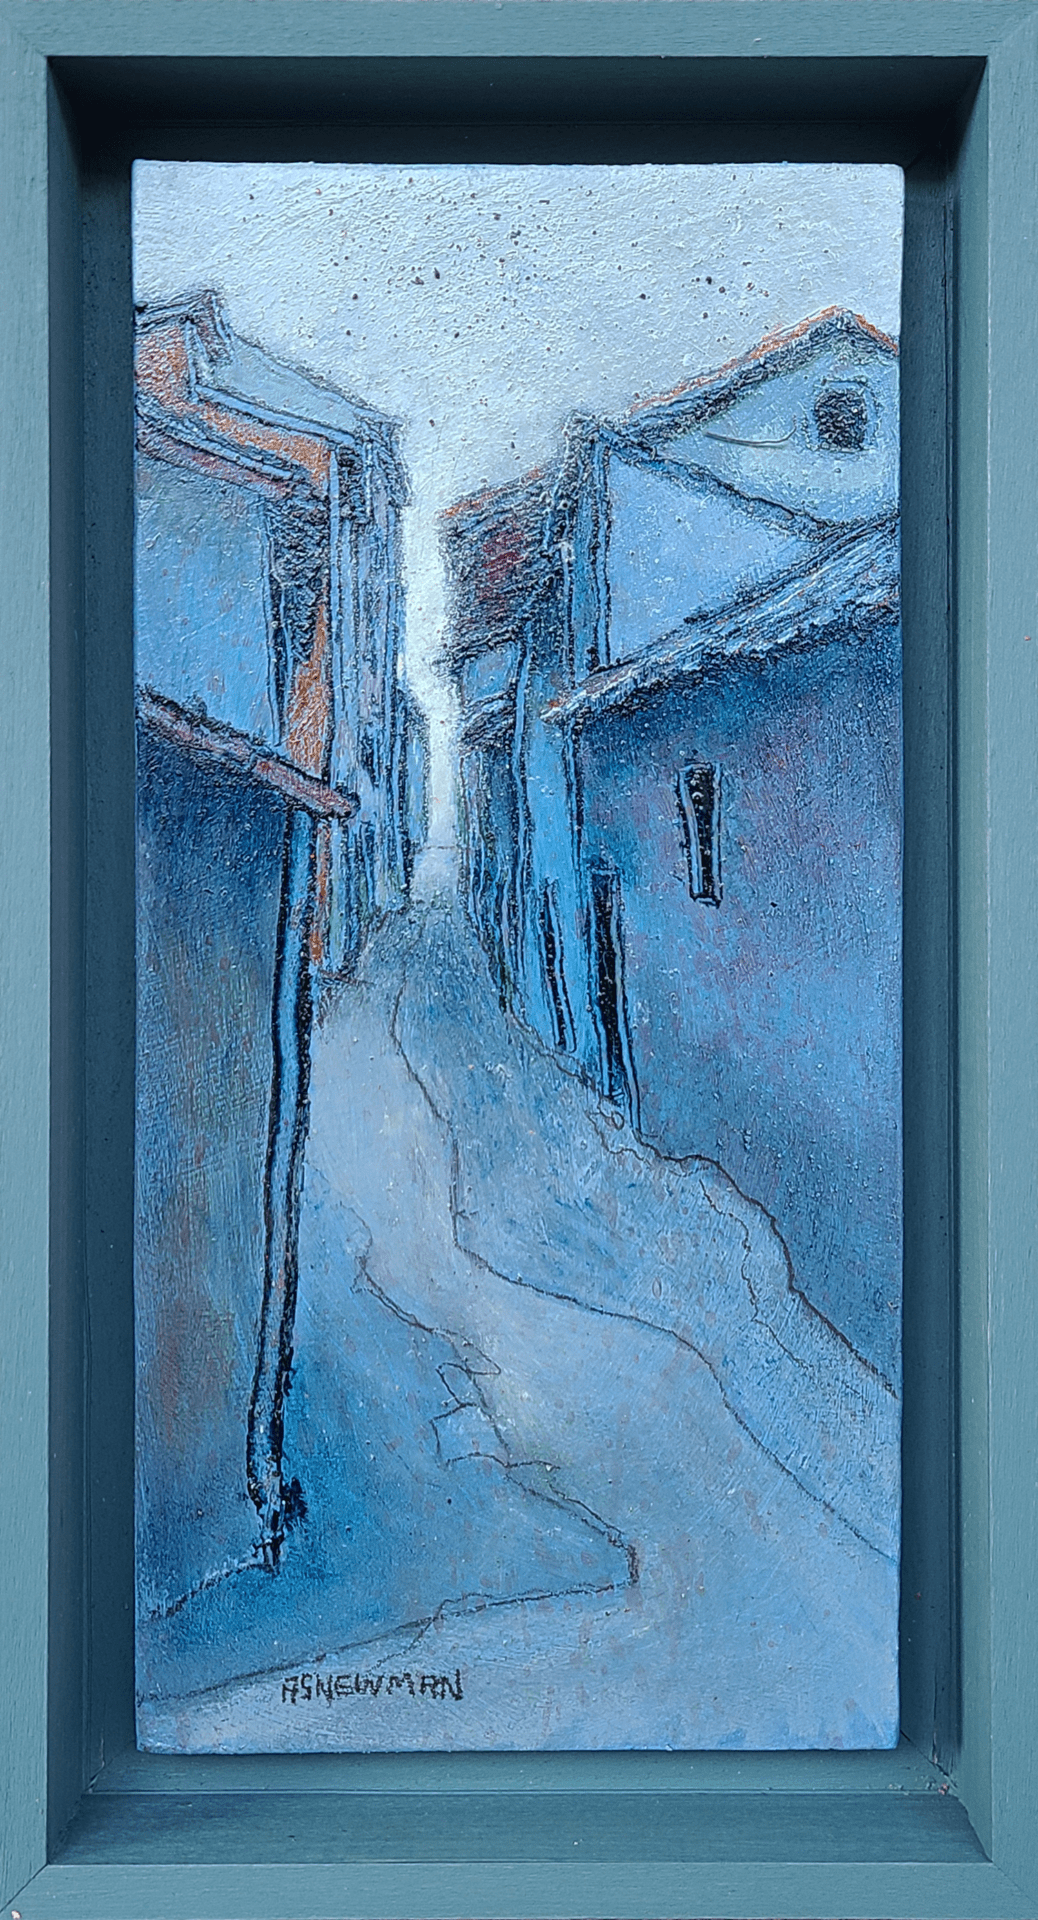 Narrow Passage (La Fresneda) 2 | Andy Newman | Oil on Panel | 9 x 4.25""